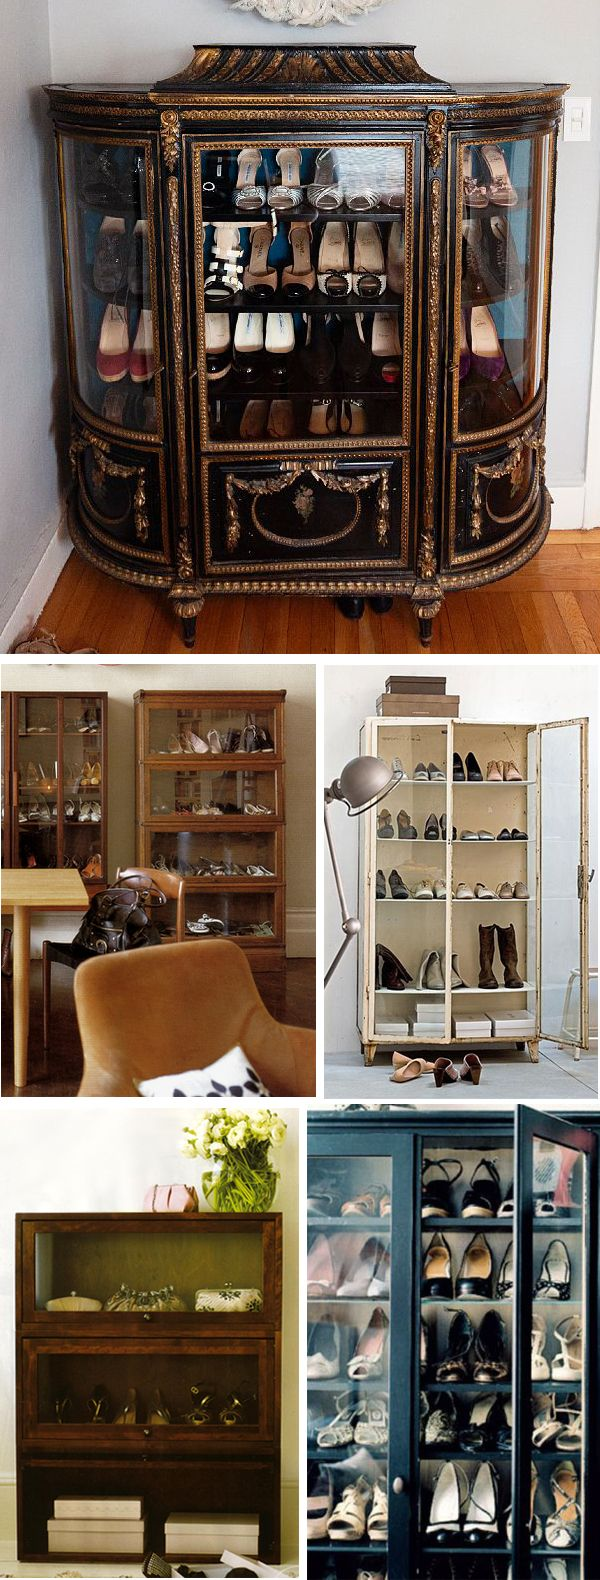 Genius!: Expensive Shoes, Shoes Display, Display Case, Shoes Storage Lov, Closet, Shoe Storage, Shoes Cabinets, Storage Ideas, Curio Cabinets